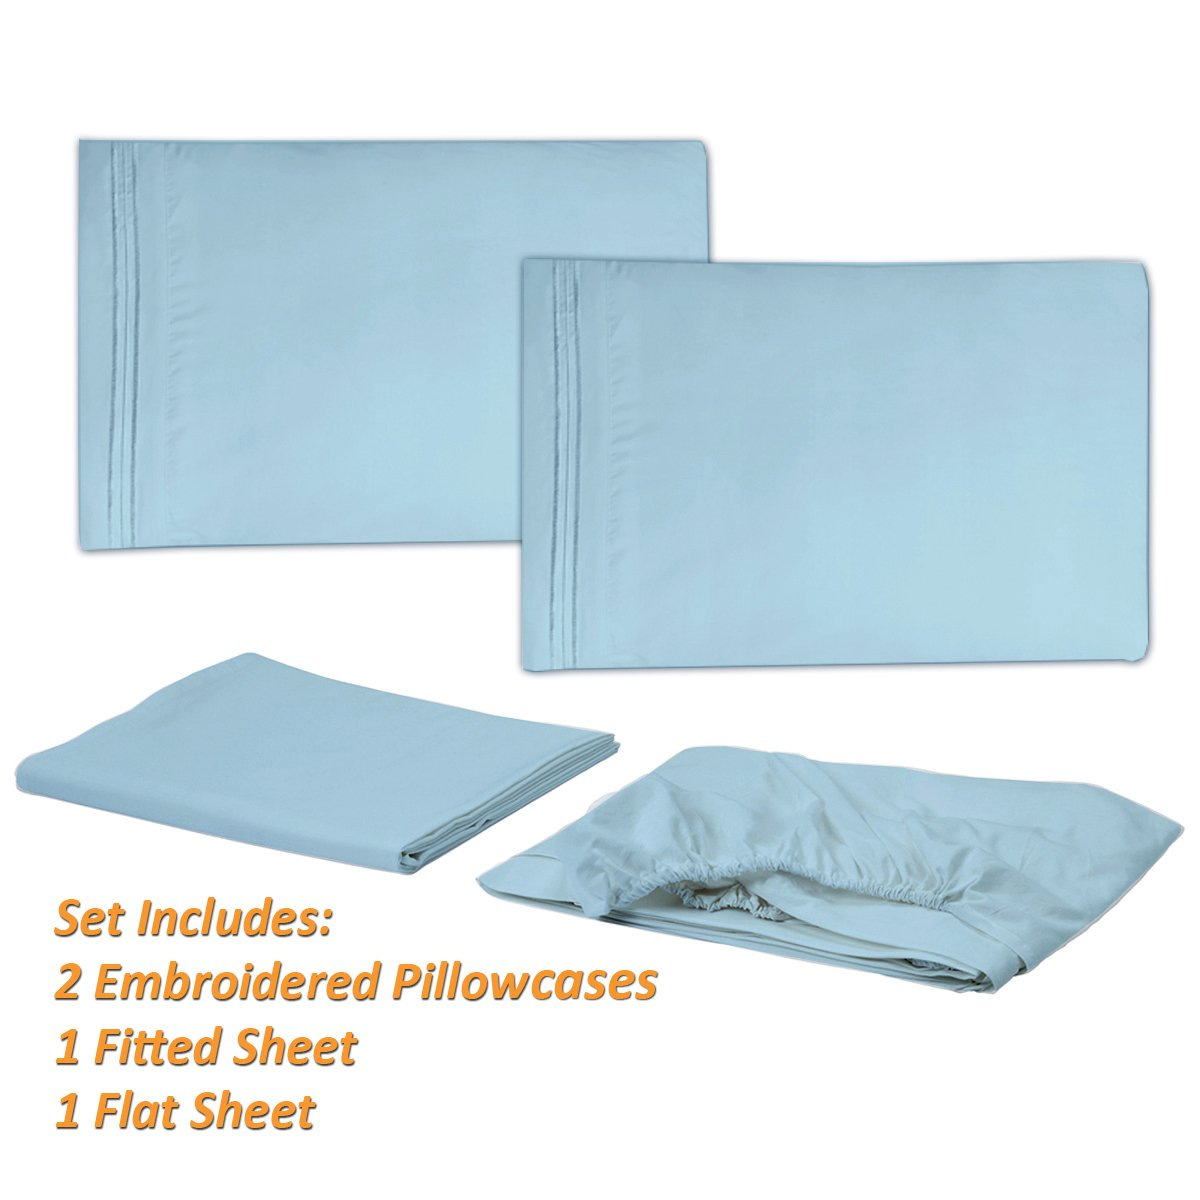 1500 Supreme Collection Extra Soft King Sheets Set, Light Blue - Luxury Bed Sheets Set With Deep Pocket Wrinkle Free Hypoallergenic Bedding, Over 40 Colors, King Size, Light Blue by Sweet Home Collection (Image #3)